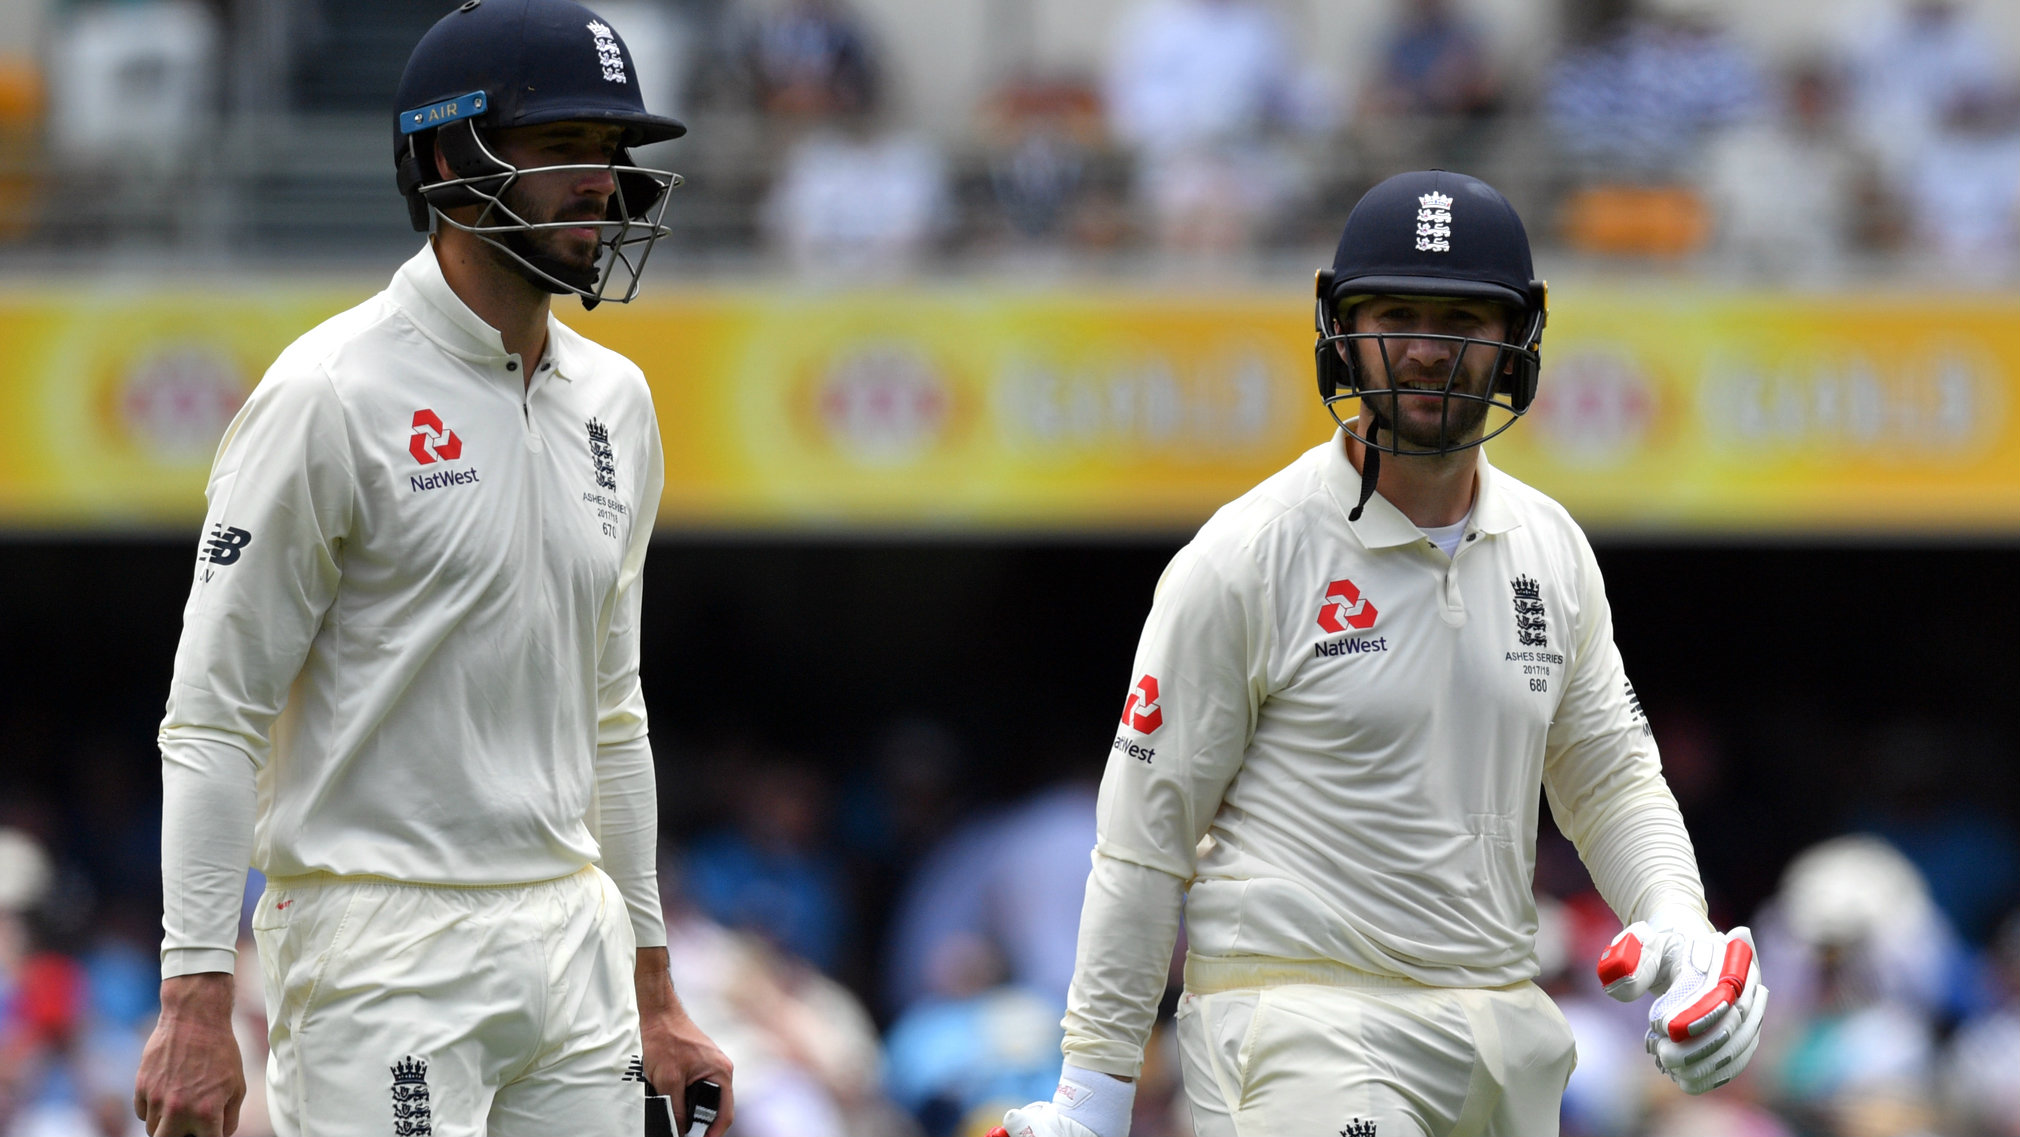 <em> Mark Stoneman and James Vince have averaged 30.17 and 24.90 respectively in Test cricket. </em>